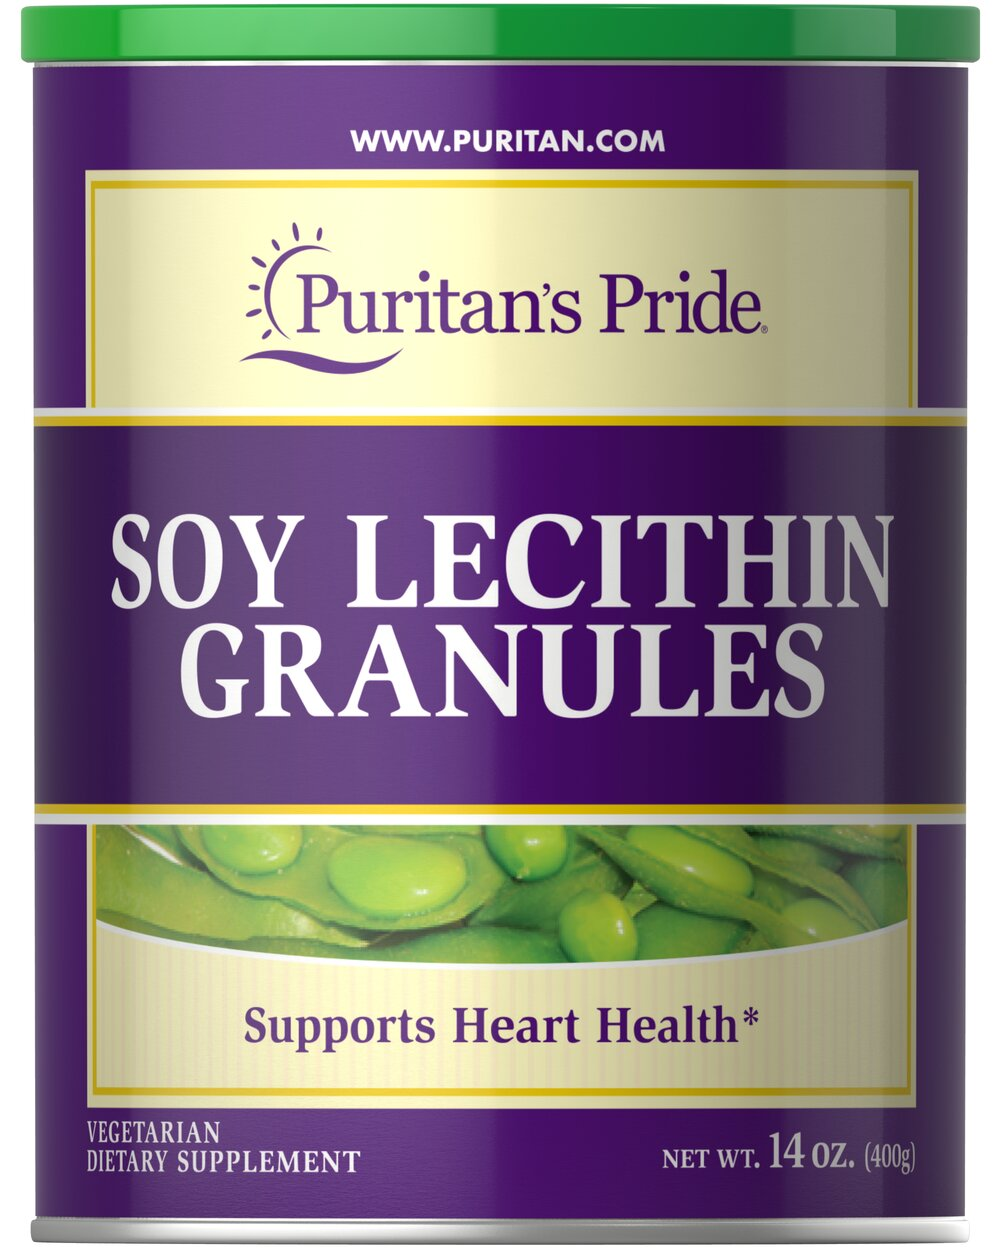 Soy Lecithin Granules 1680 mg <p>95% SOY PHOSPHATIDES </p><p>Finest Quality</p><p>Supports Mental Function & Nerve Cell Health**</p><p>Lecithin is an important natural source of choline, inositol, and linoleic acid. Choline and Inositol are vital components of all cell membranes, and play important roles in cell growth and function.**</p> 14 oz Granules 1680 mg $18.99